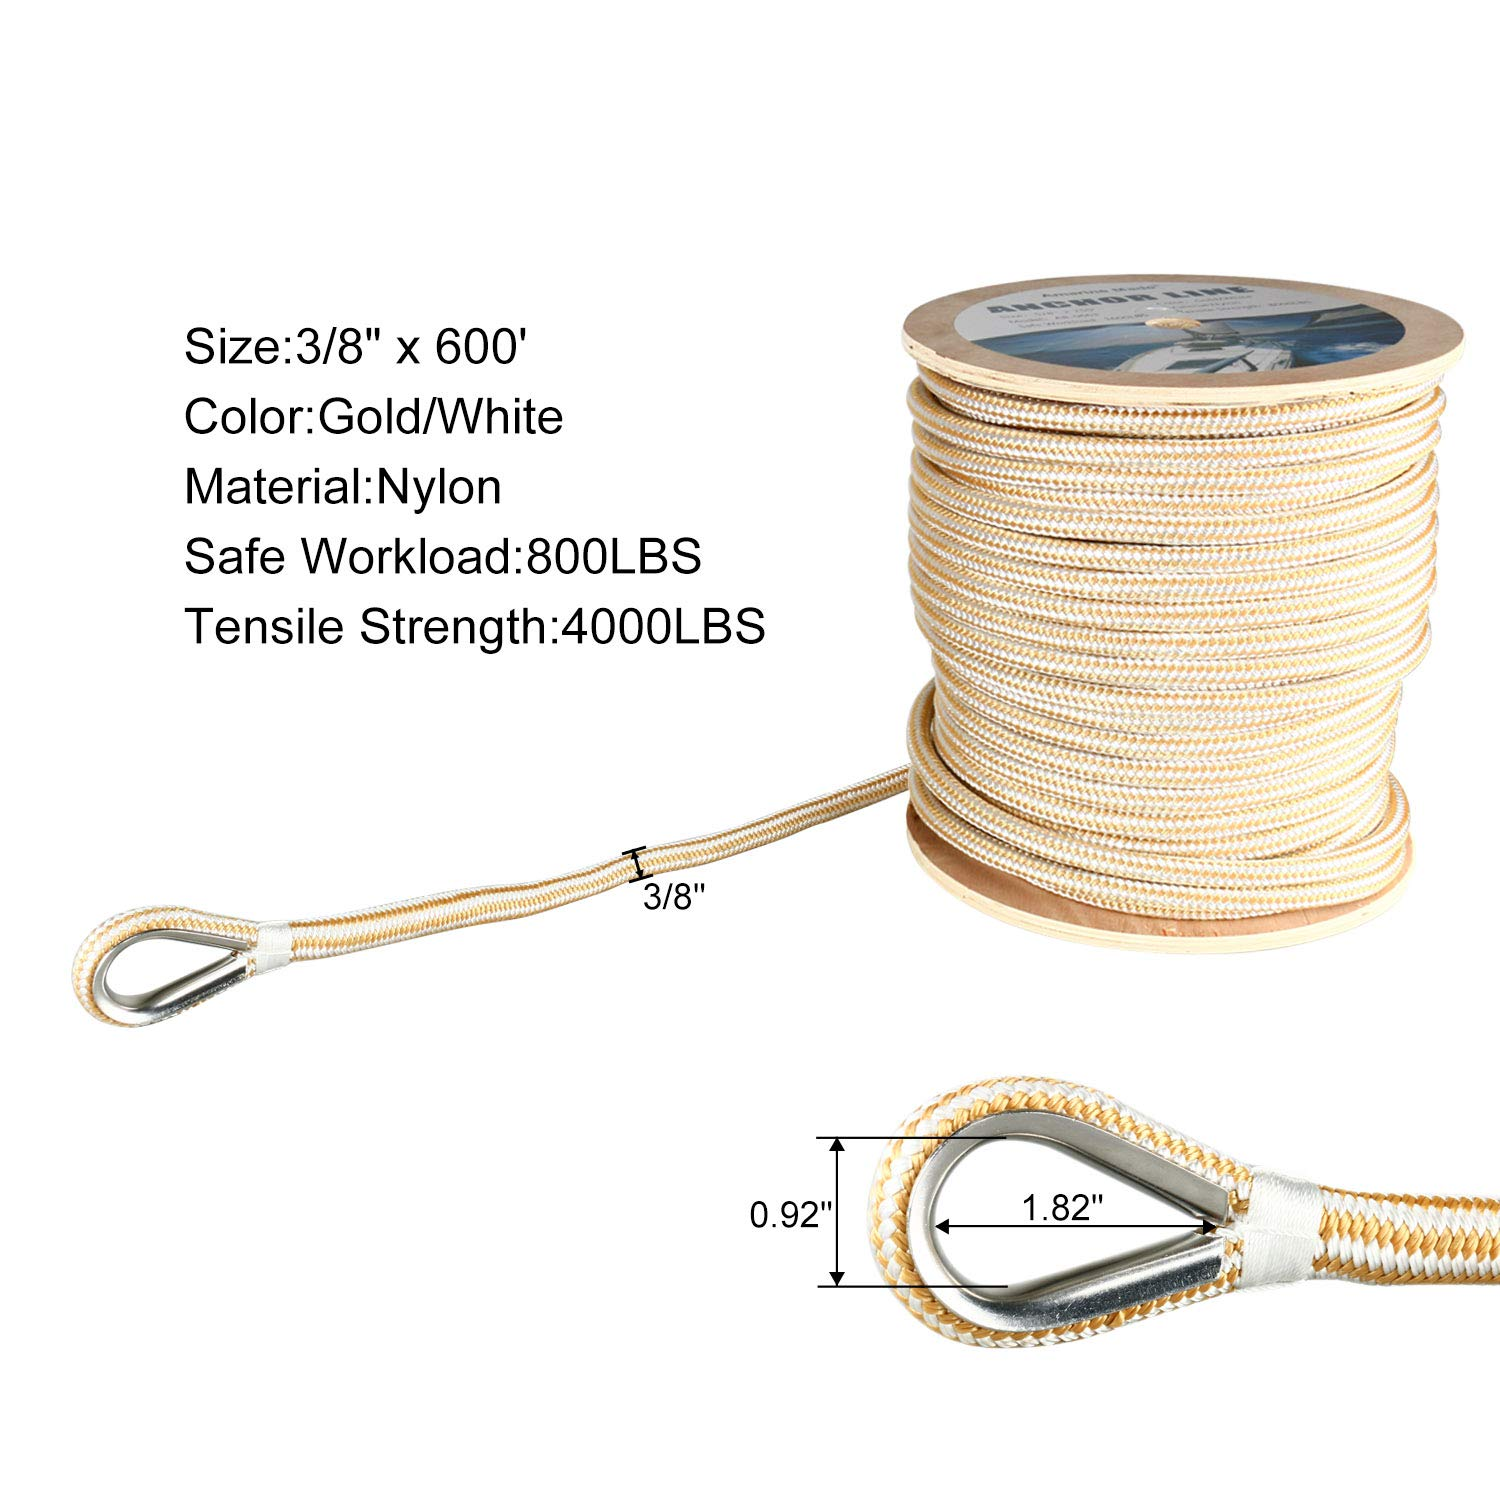 Amarine Made Heavy Duty Double Braid Nylon Anchor Line with Stainless Steel Thimble-White/Gold (3/8'' x 600')